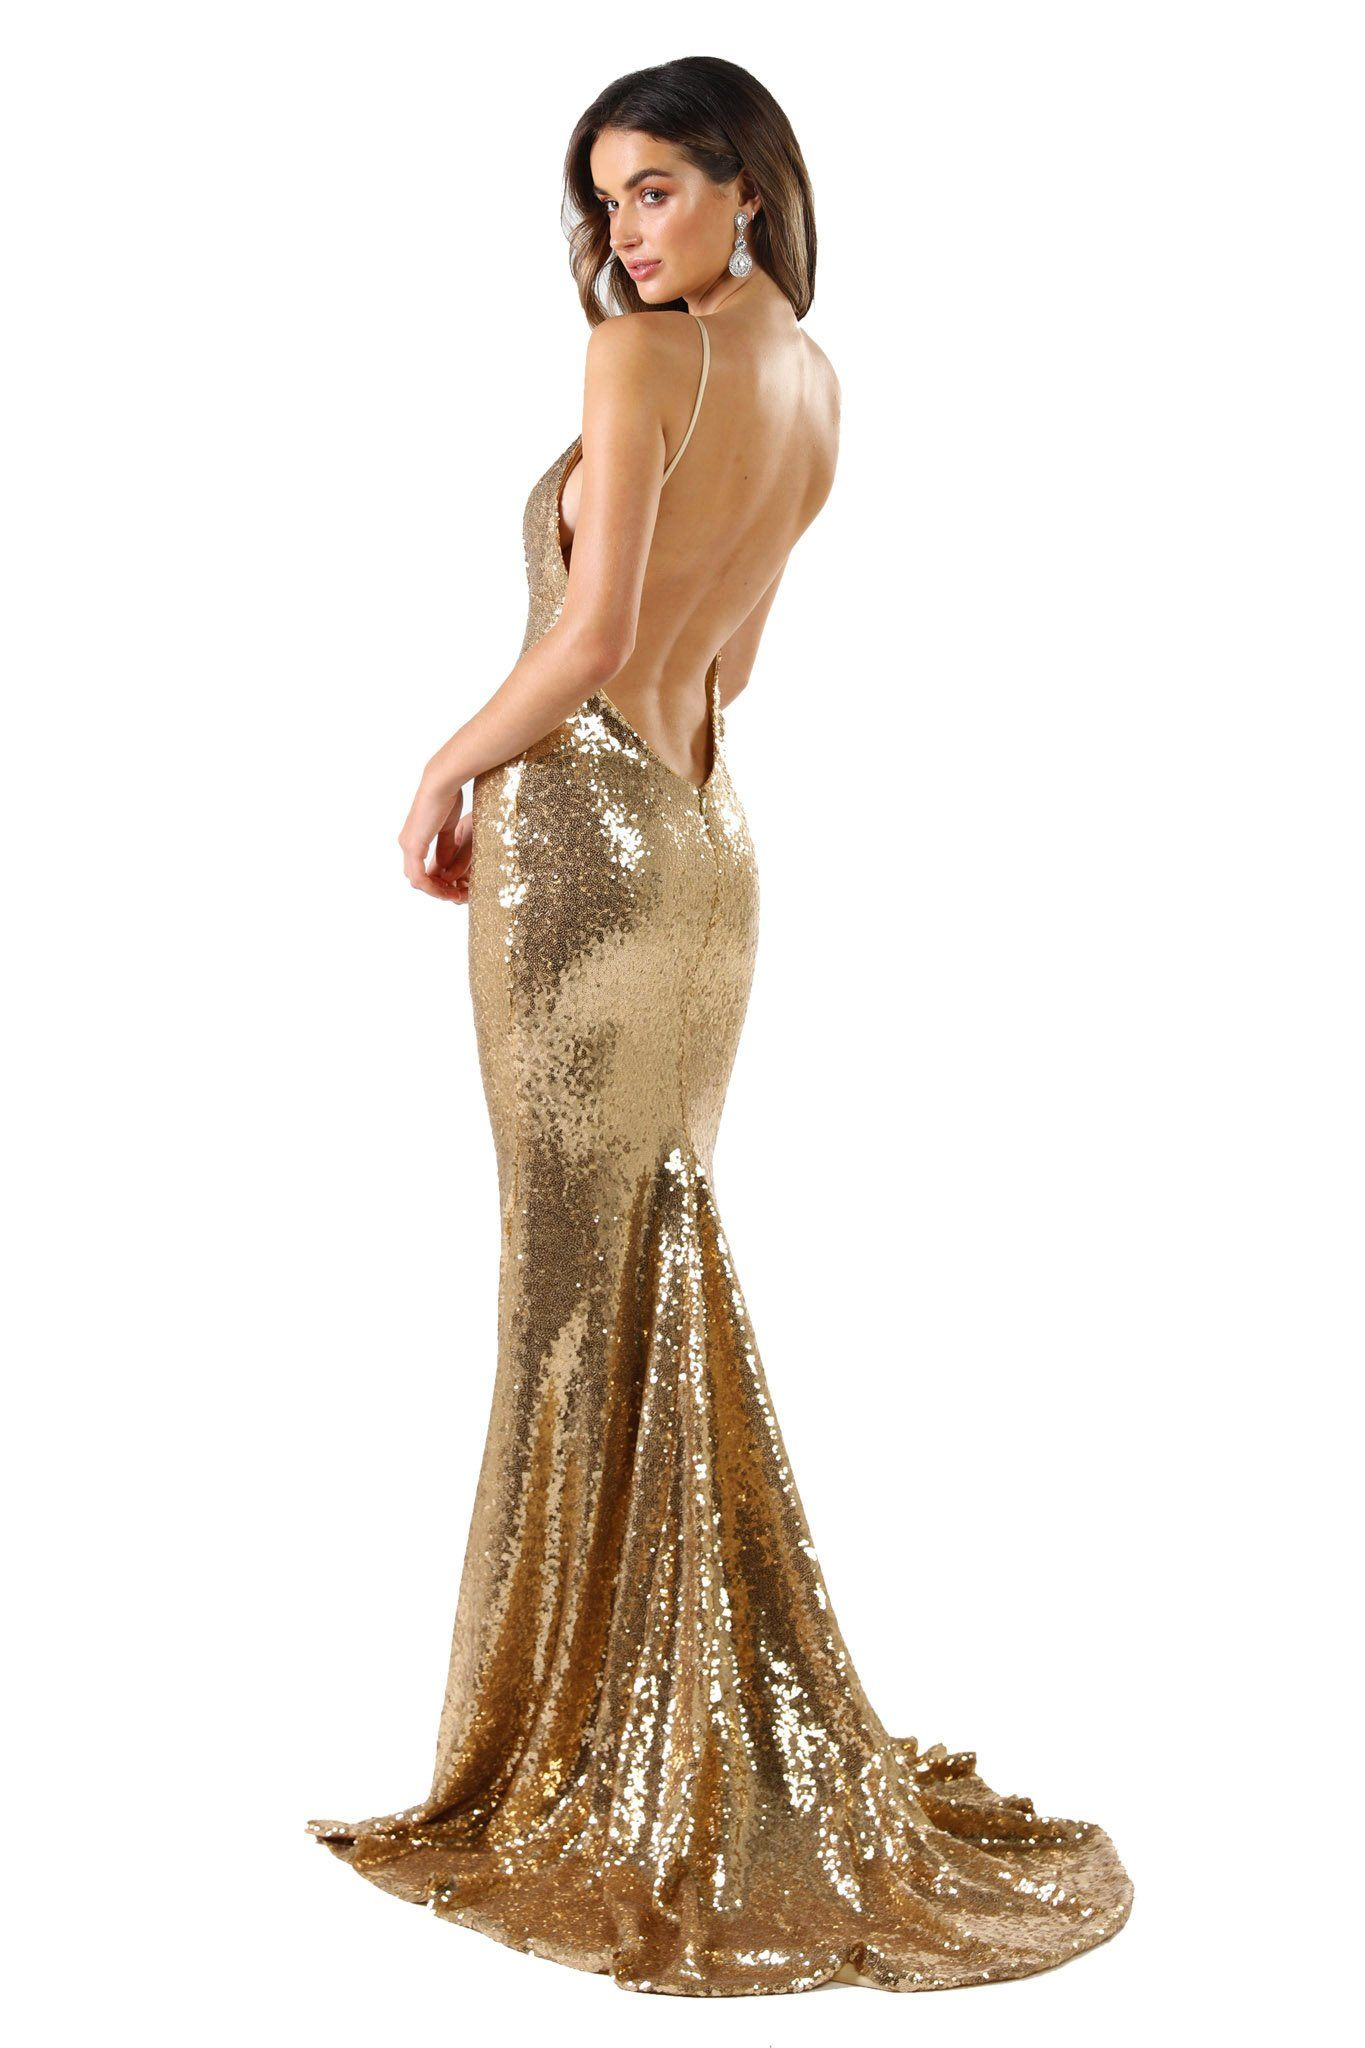 V Shaped Backless Design of Gold Sequin Formal Prom Sleeveless Gown featuring Deep V Neck, Thin Shoulder Straps, and Long Train